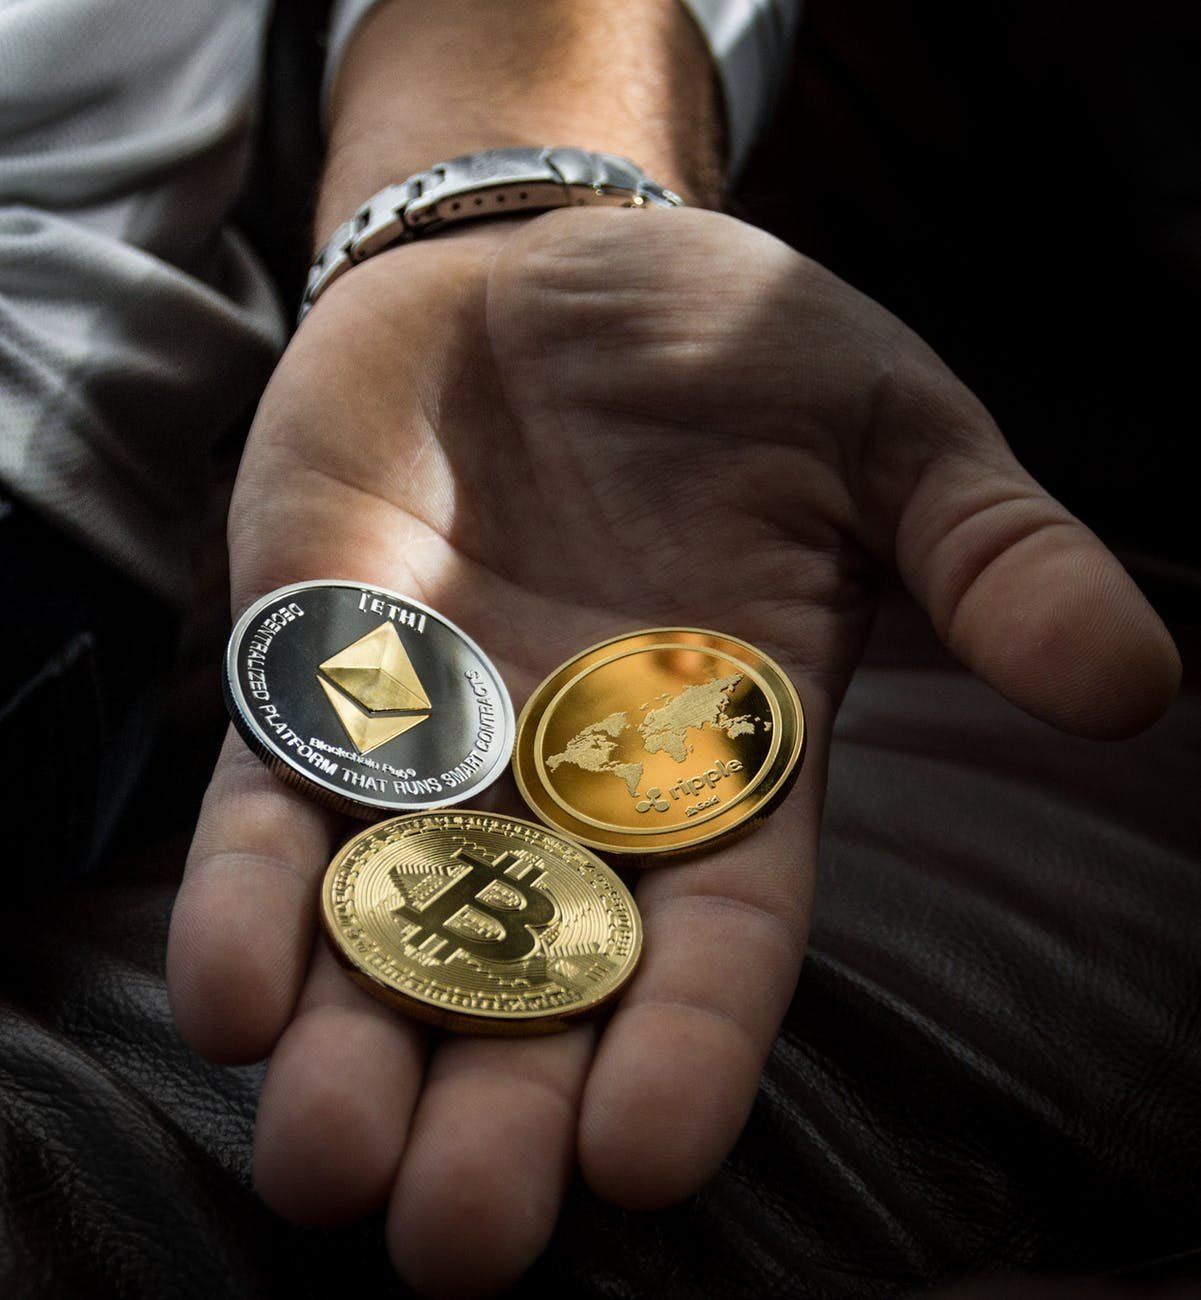 /securityorg-knows-15-million-americans-will-be-buying-cryptocurrency-in-the-next-year-pt7z31xx feature image